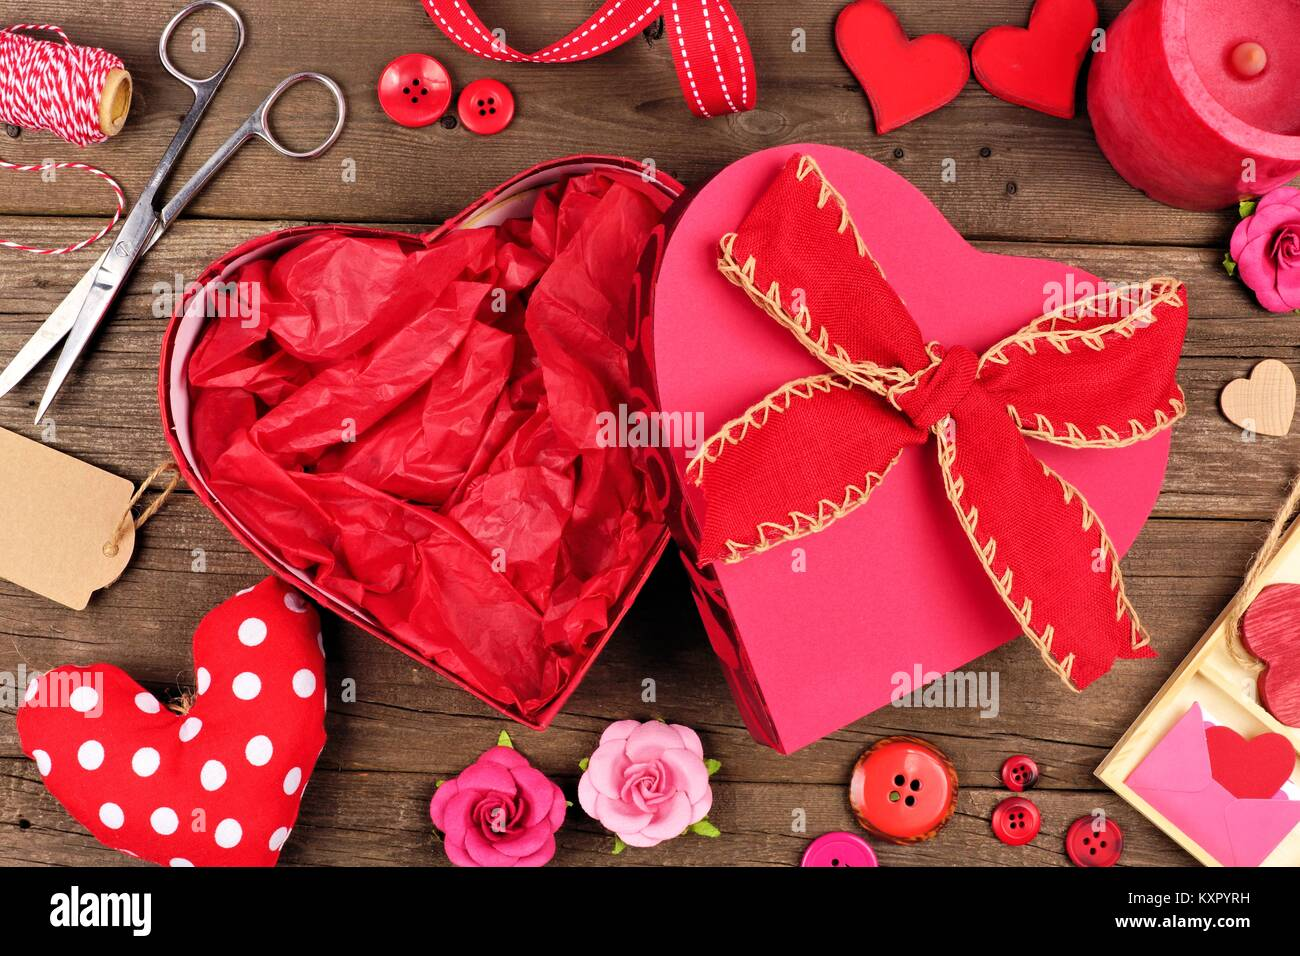 Open, empty Valentines Day heart shaped gift box with decor and crafting frame against a rustic wood background - Stock Image